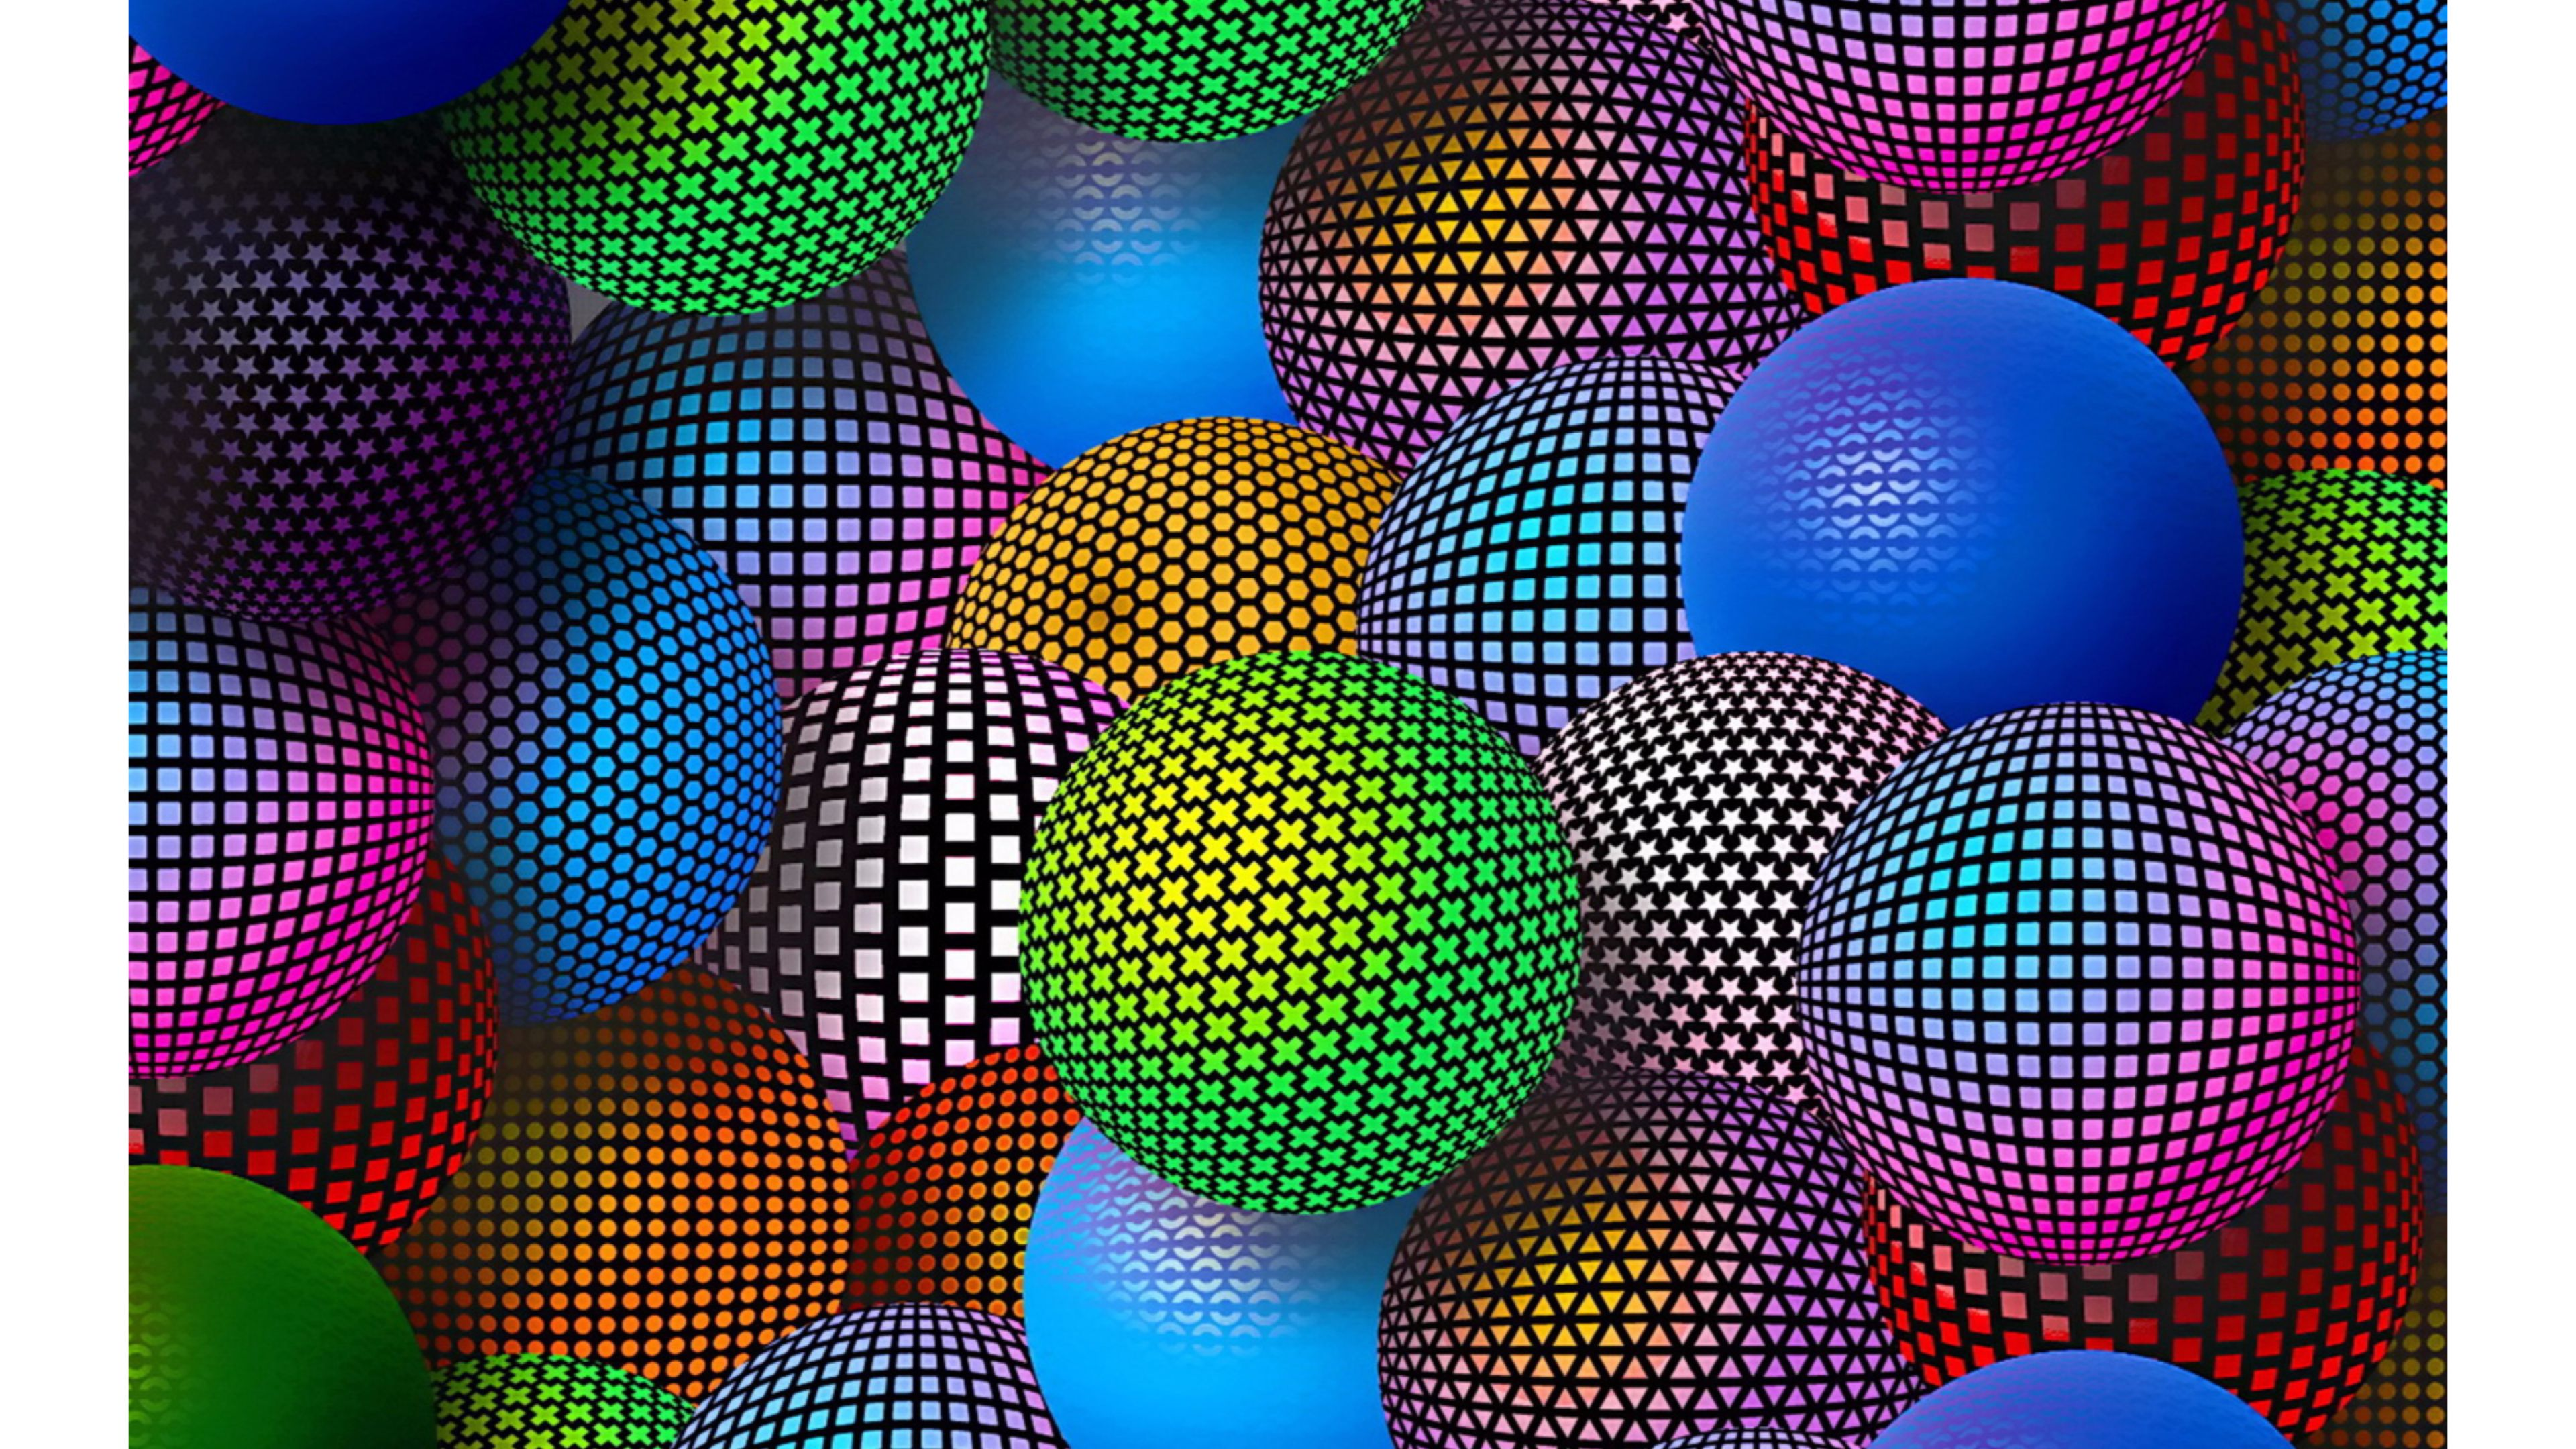 Hq 3d Wallpapers Free Download 4k Balls Wallpapers High Quality Download Free